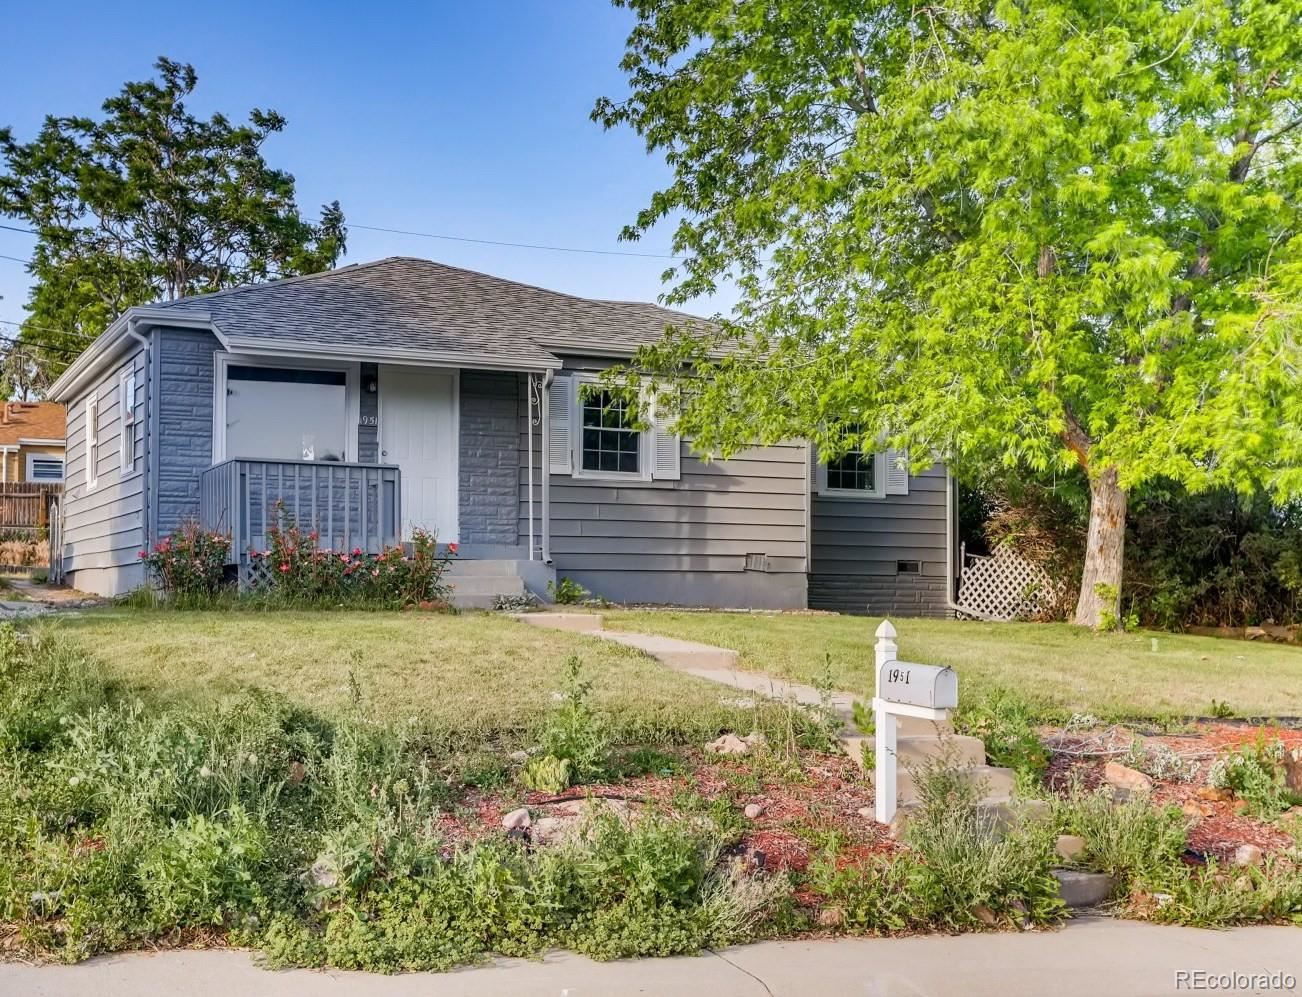 1951 Lilly Drive, Thornton, CO 80229 - #: 4803261